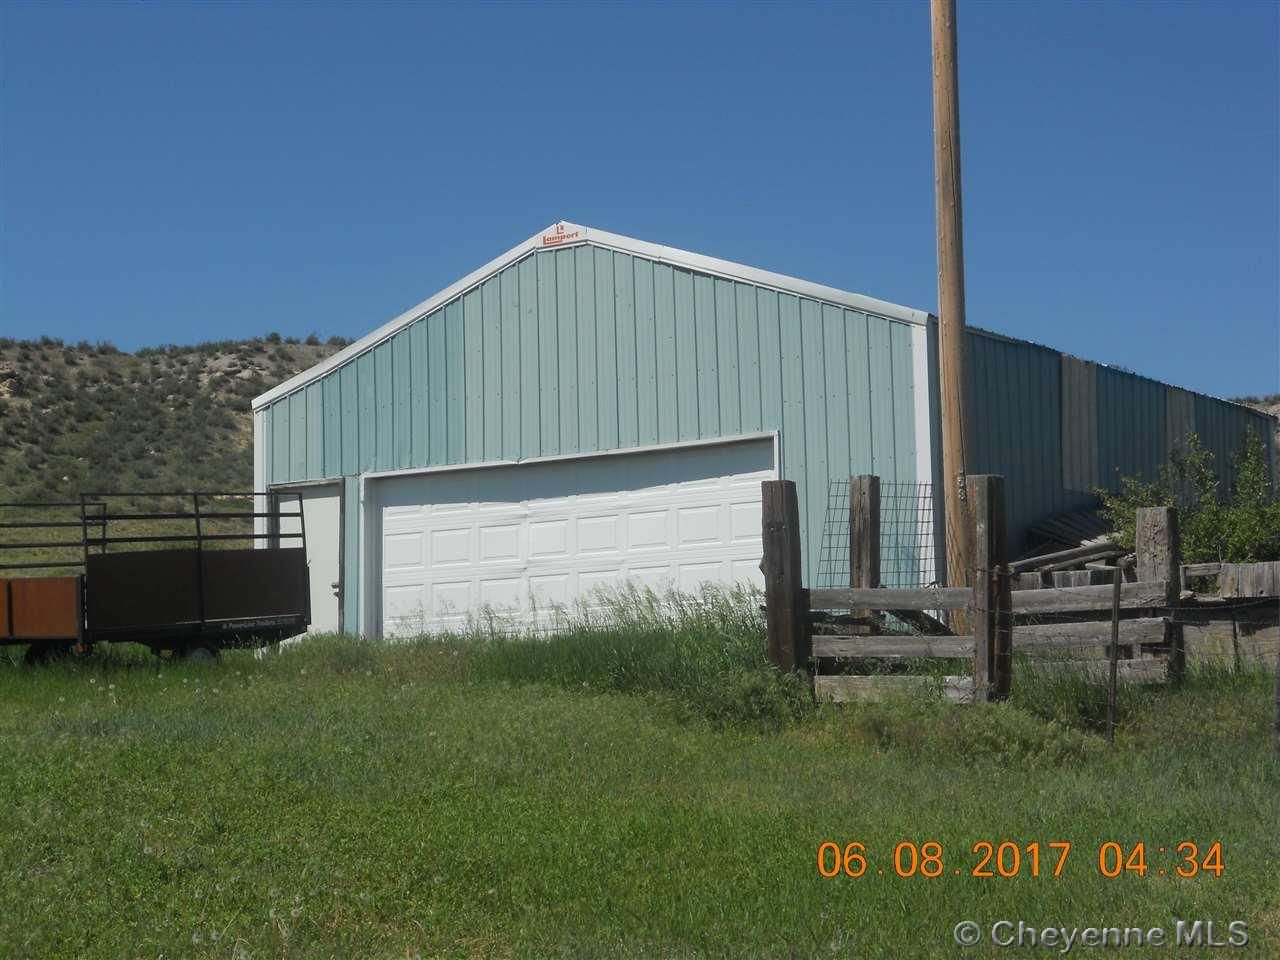 Farm / Ranch for Sale at 49 Bluffs Rd Chugwater, Wyoming 82210 United States